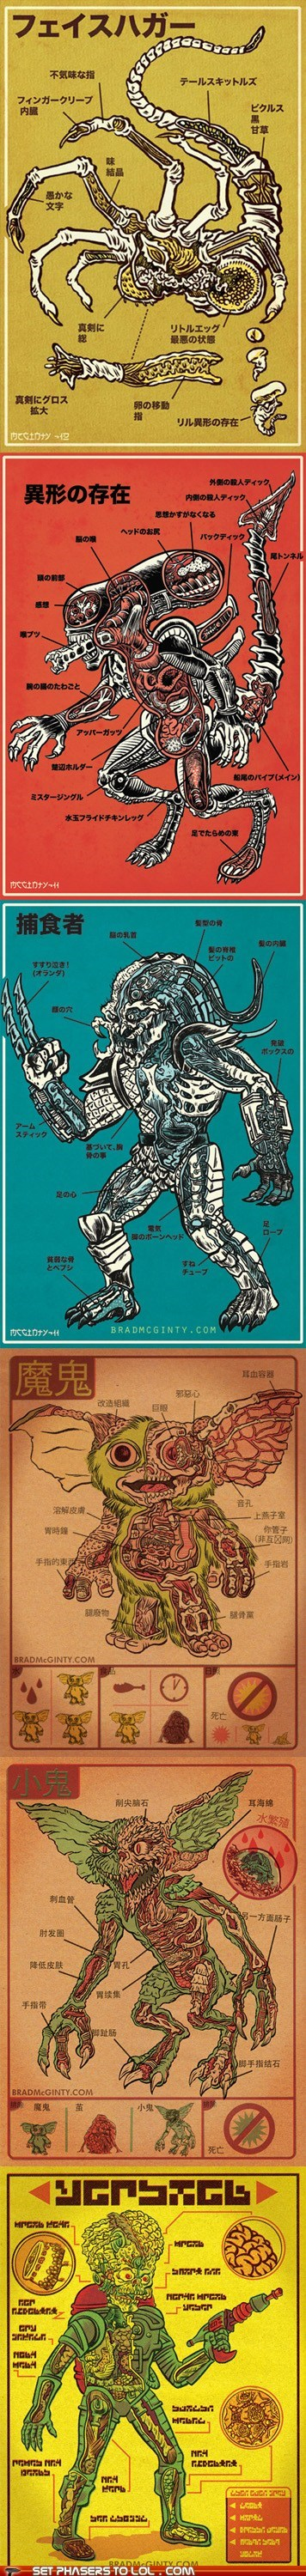 Set Phasers to LOL: Monster Anatomy